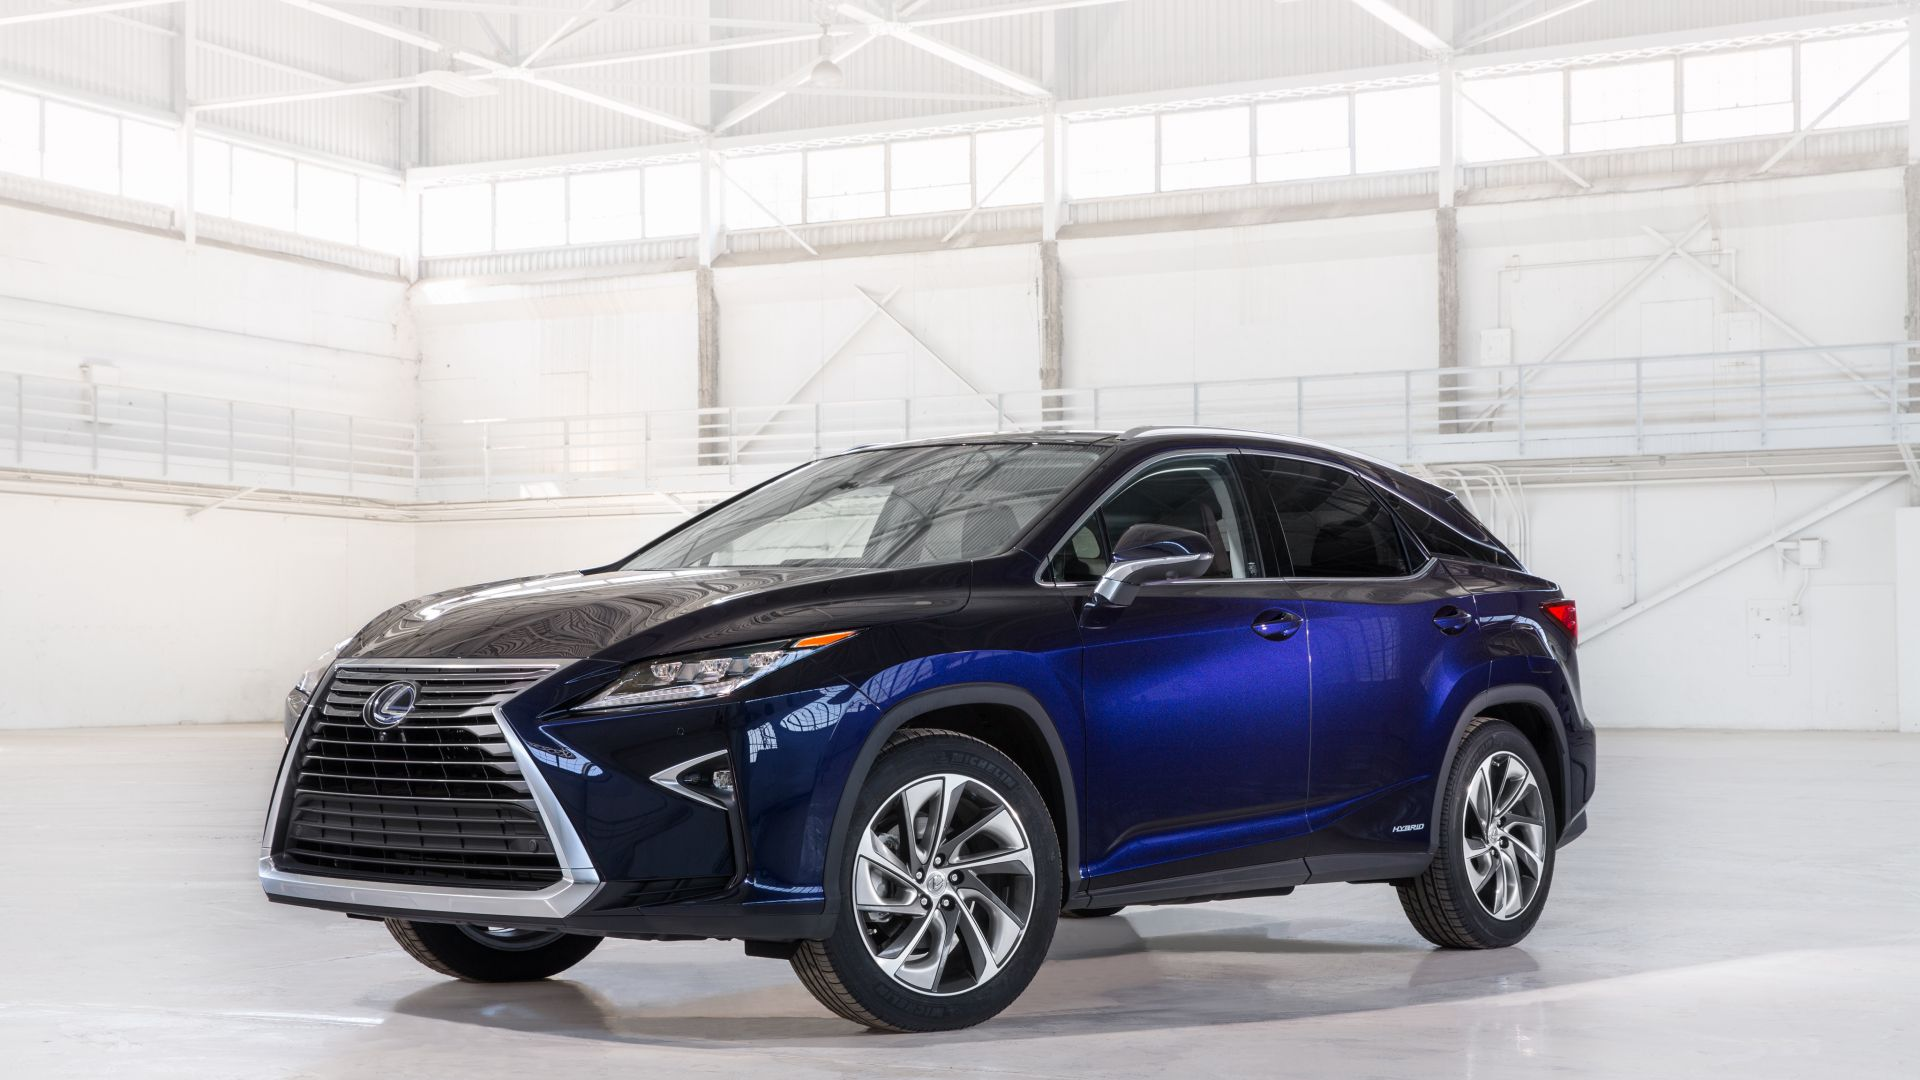 Lexus RX 450, supercar, luxury cars, test drive (horizontal)